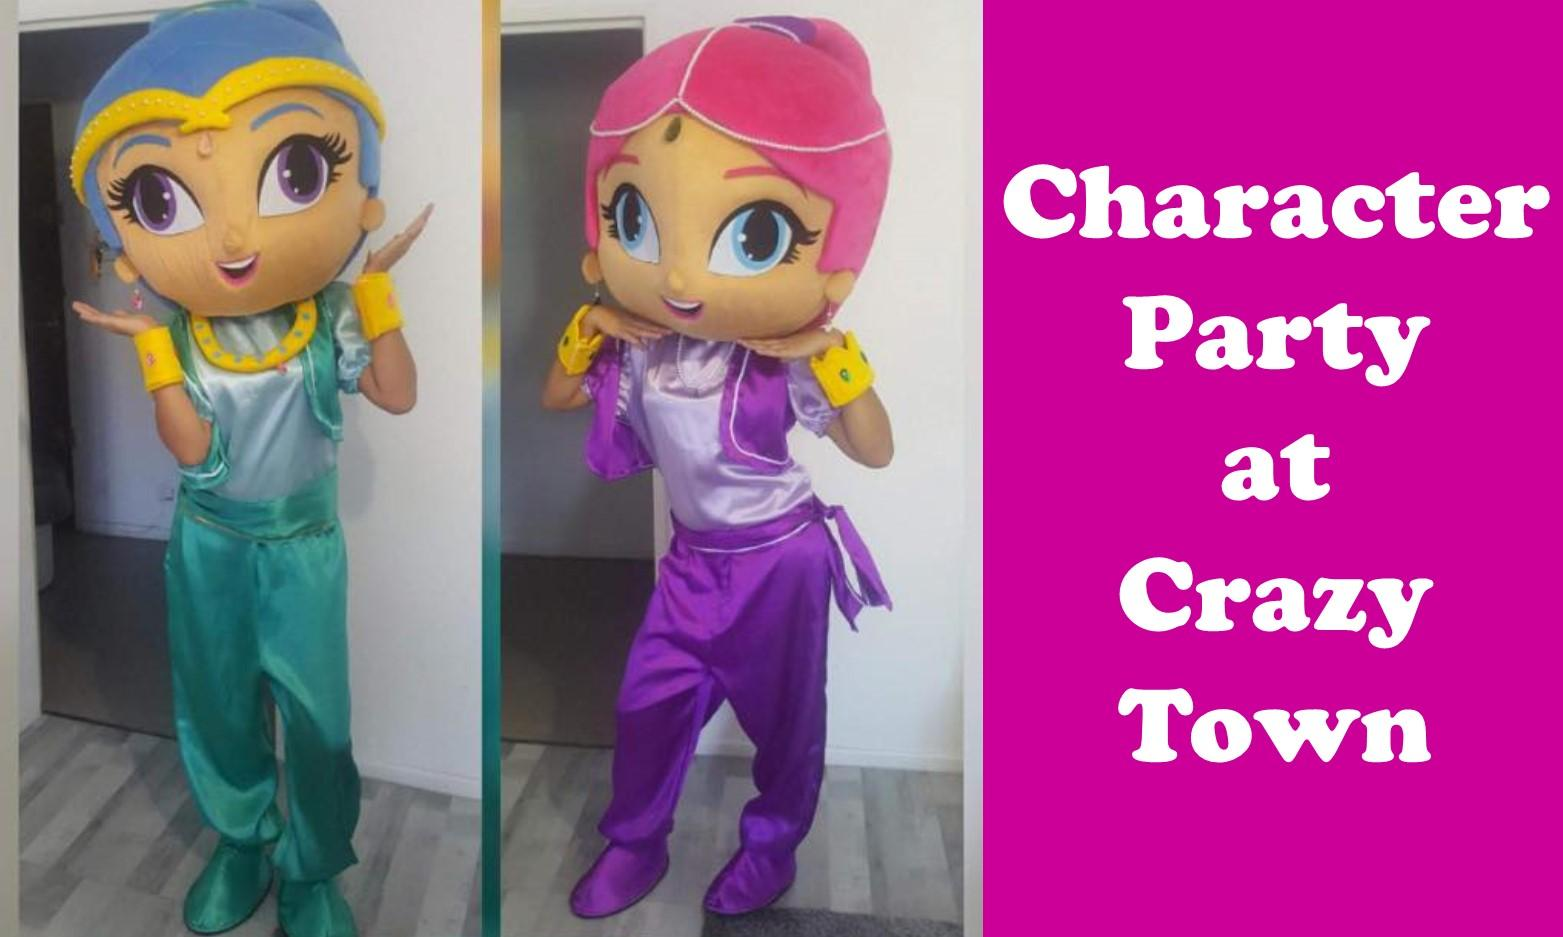 Character Party at Crazy Town